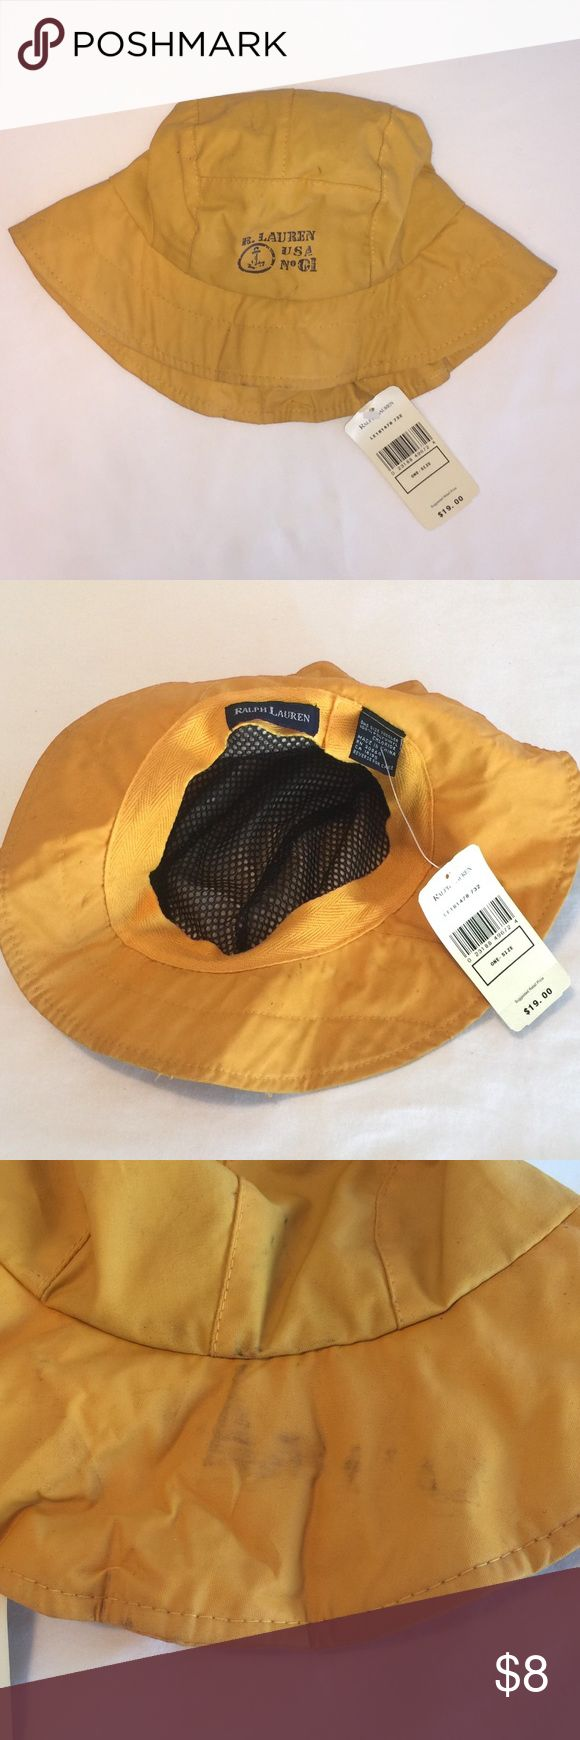 Ralph Lauren Fishermans Hat So cute!!!! This is a classic rain hat style and is water repellent. Inside is lined in Knit mesh. This is brand new with tags, but there are some dark smudges on back brim and I've taken that into account with pricing (see 3rd pic). ⚓️ Ralph Lauren Accessories Hats